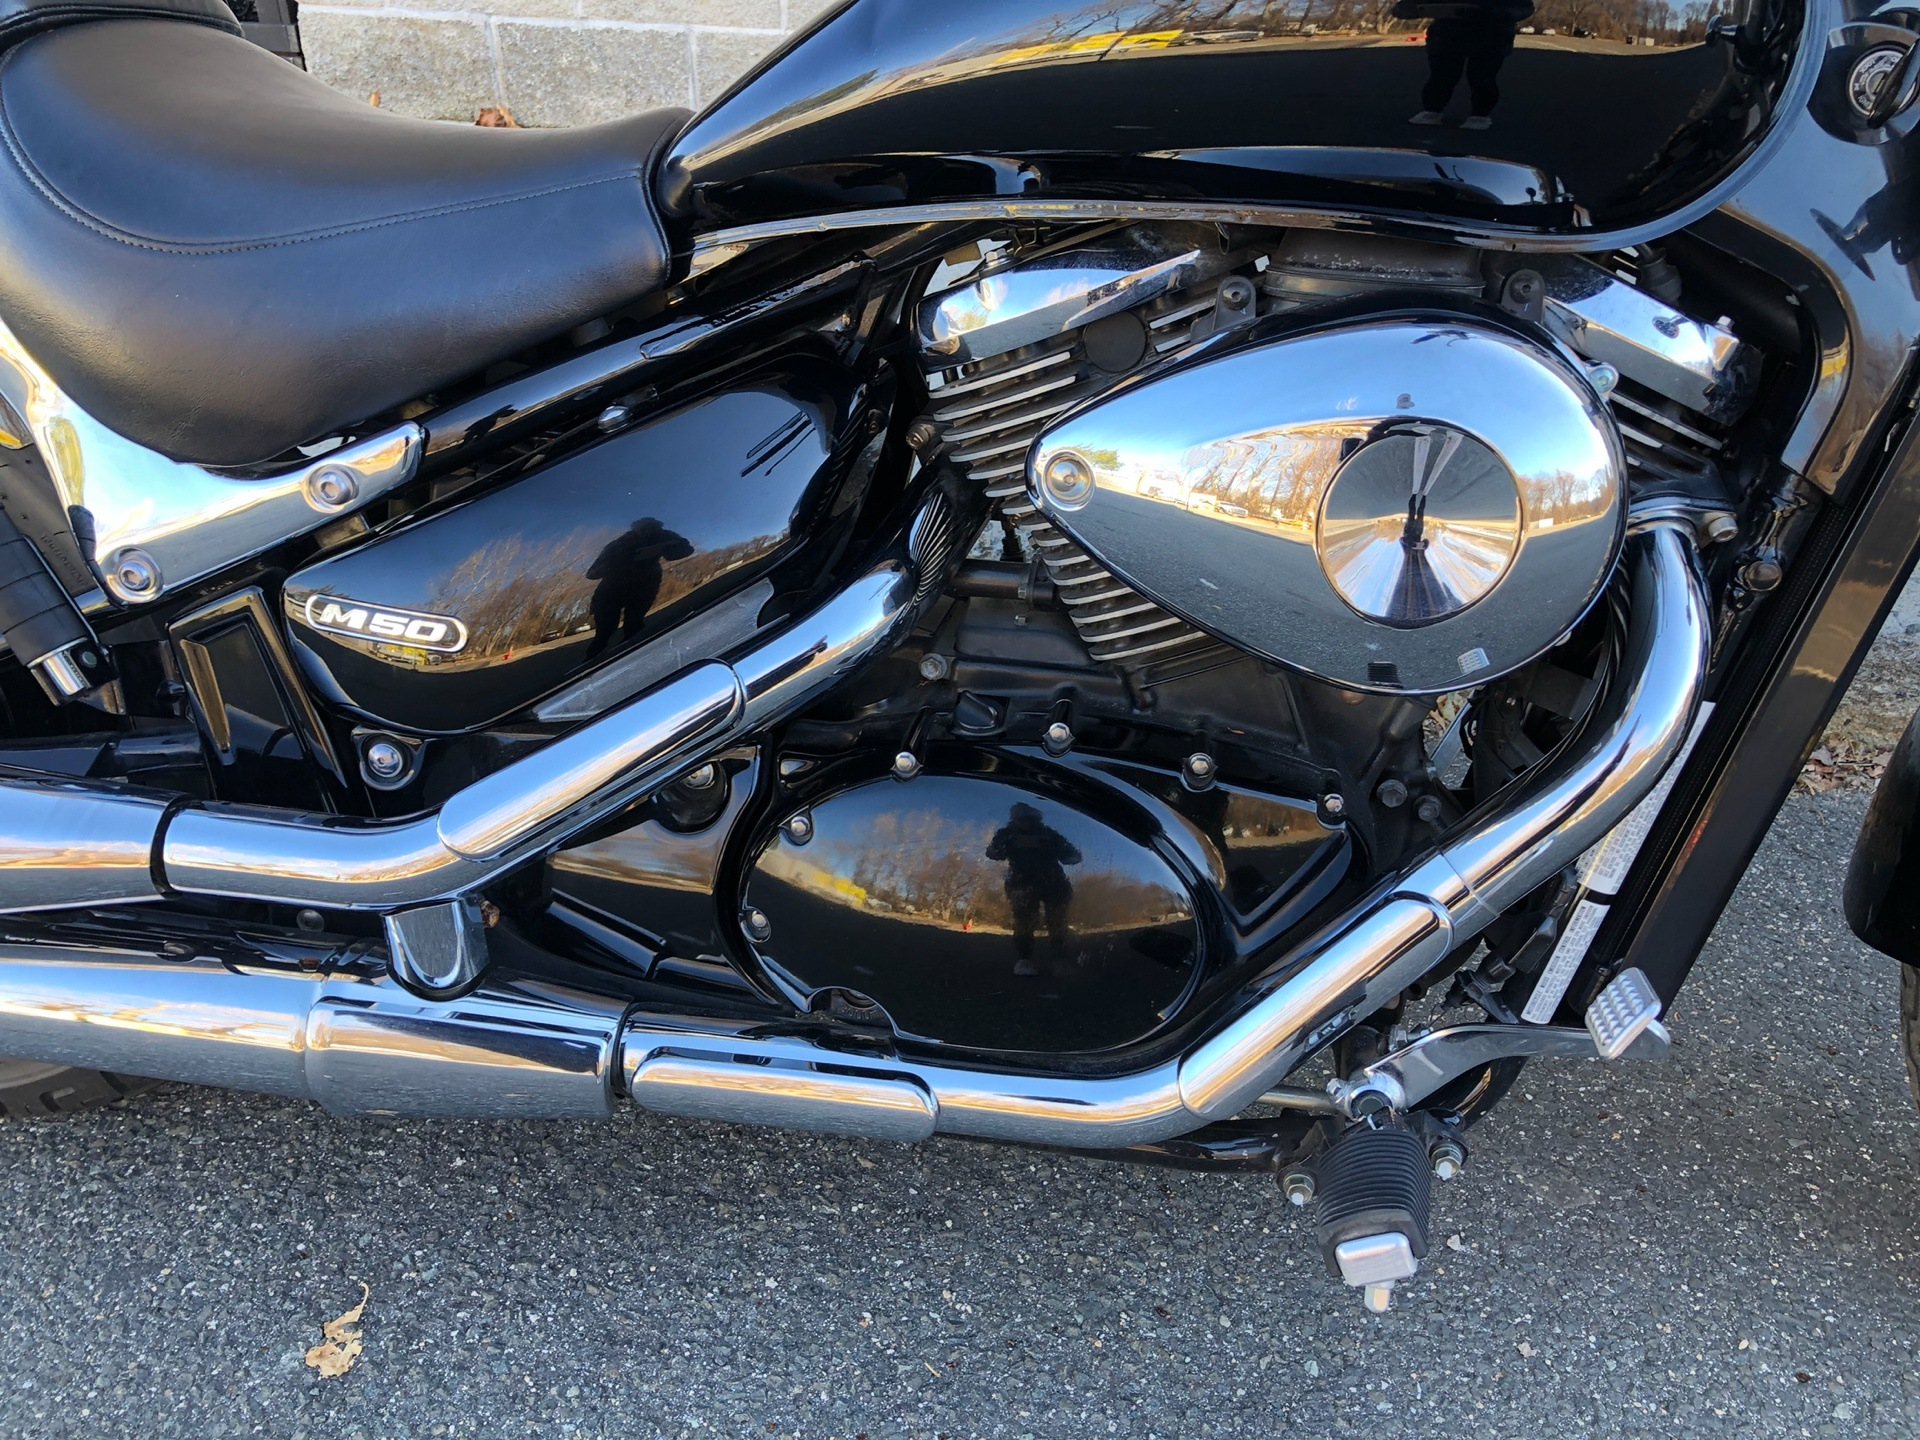 2005 Suzuki Boulevard M50 Black in Enfield, Connecticut - Photo 14